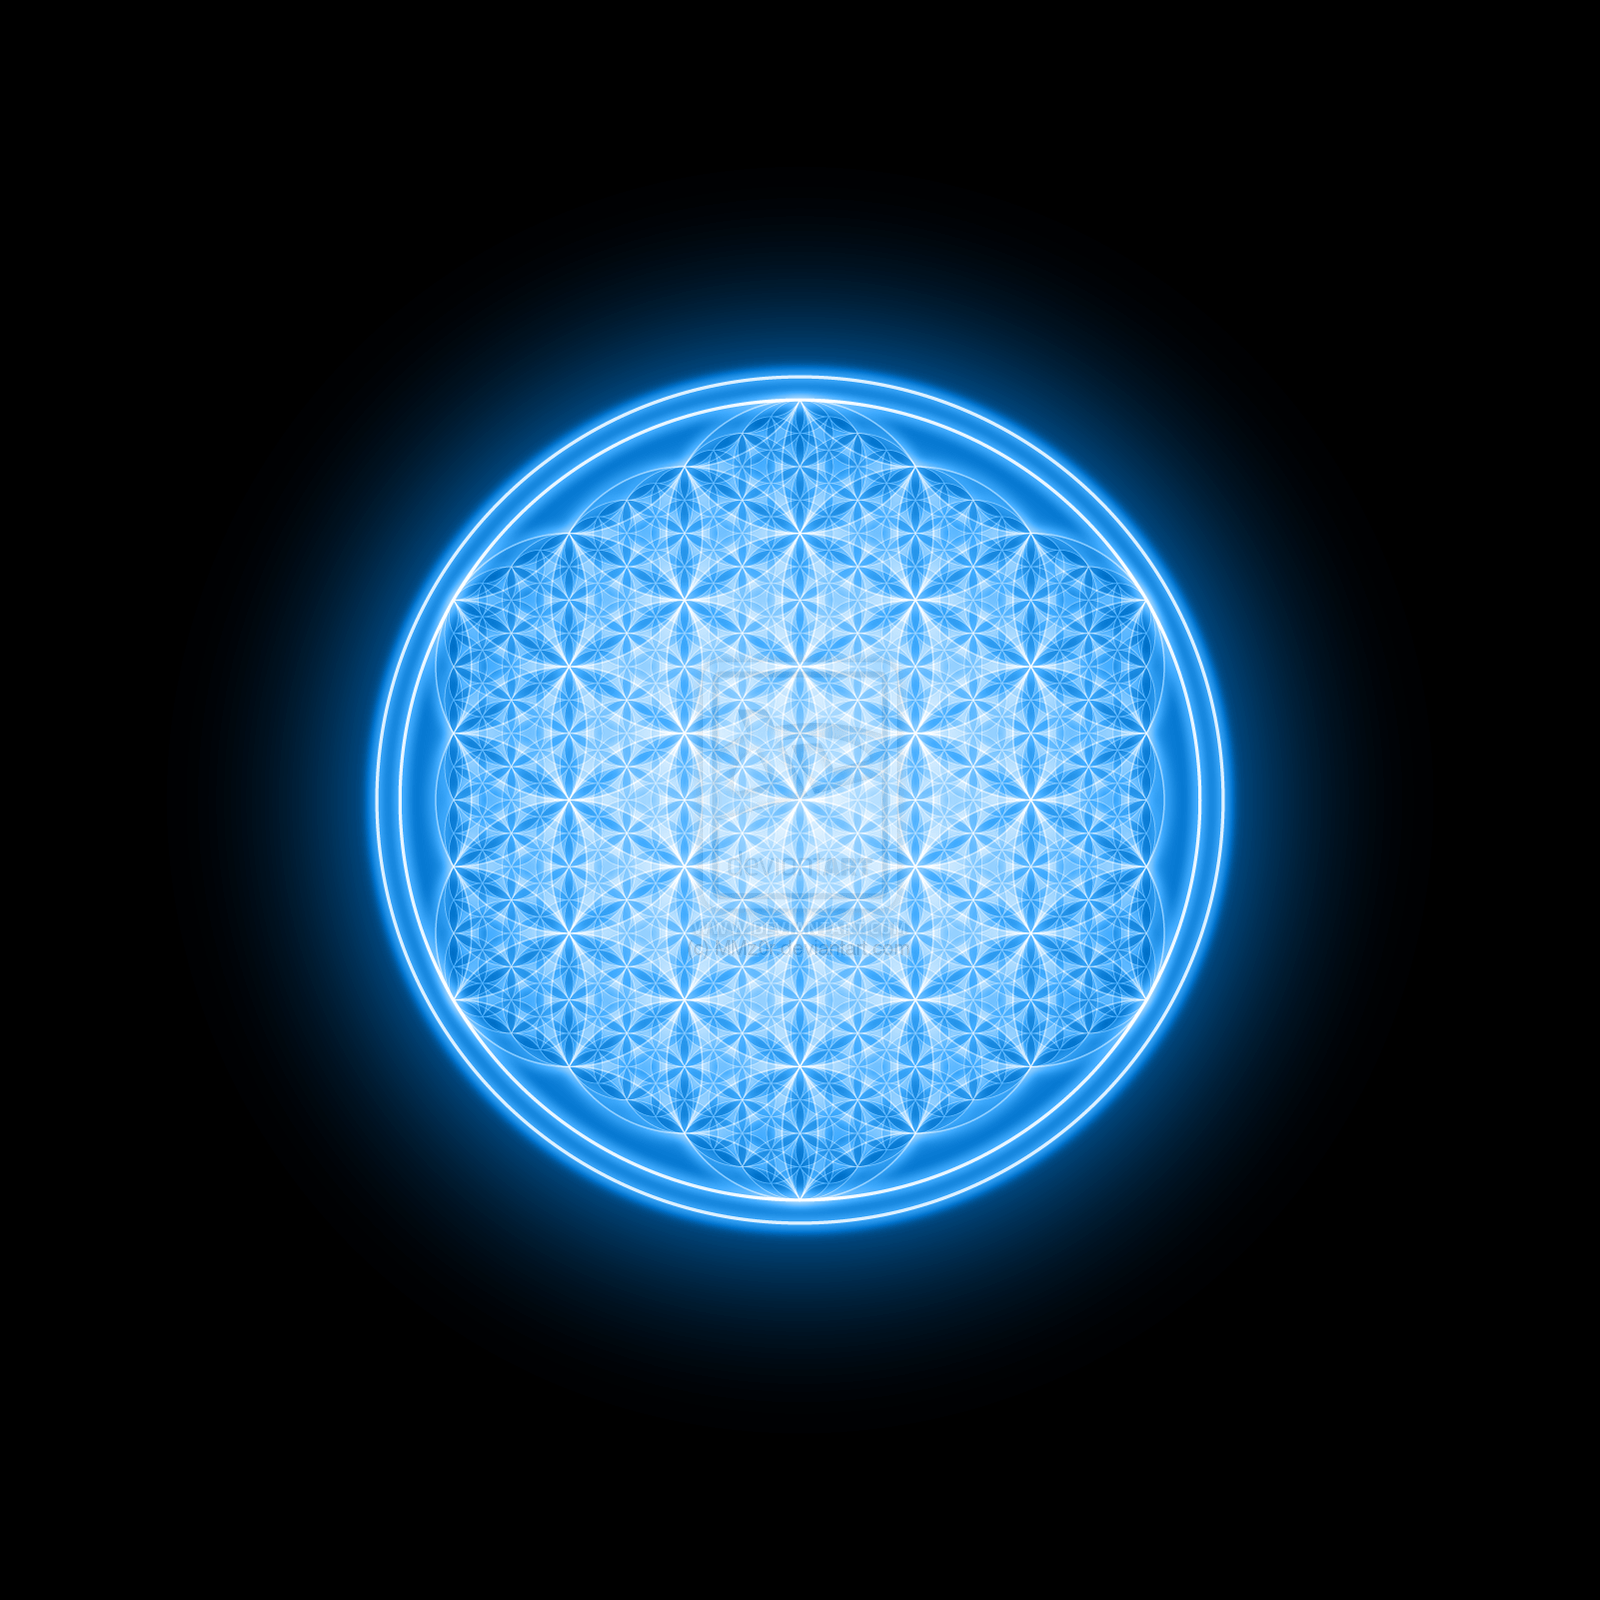 Flower Of Life Wallpaper Posted By Ethan Thompson